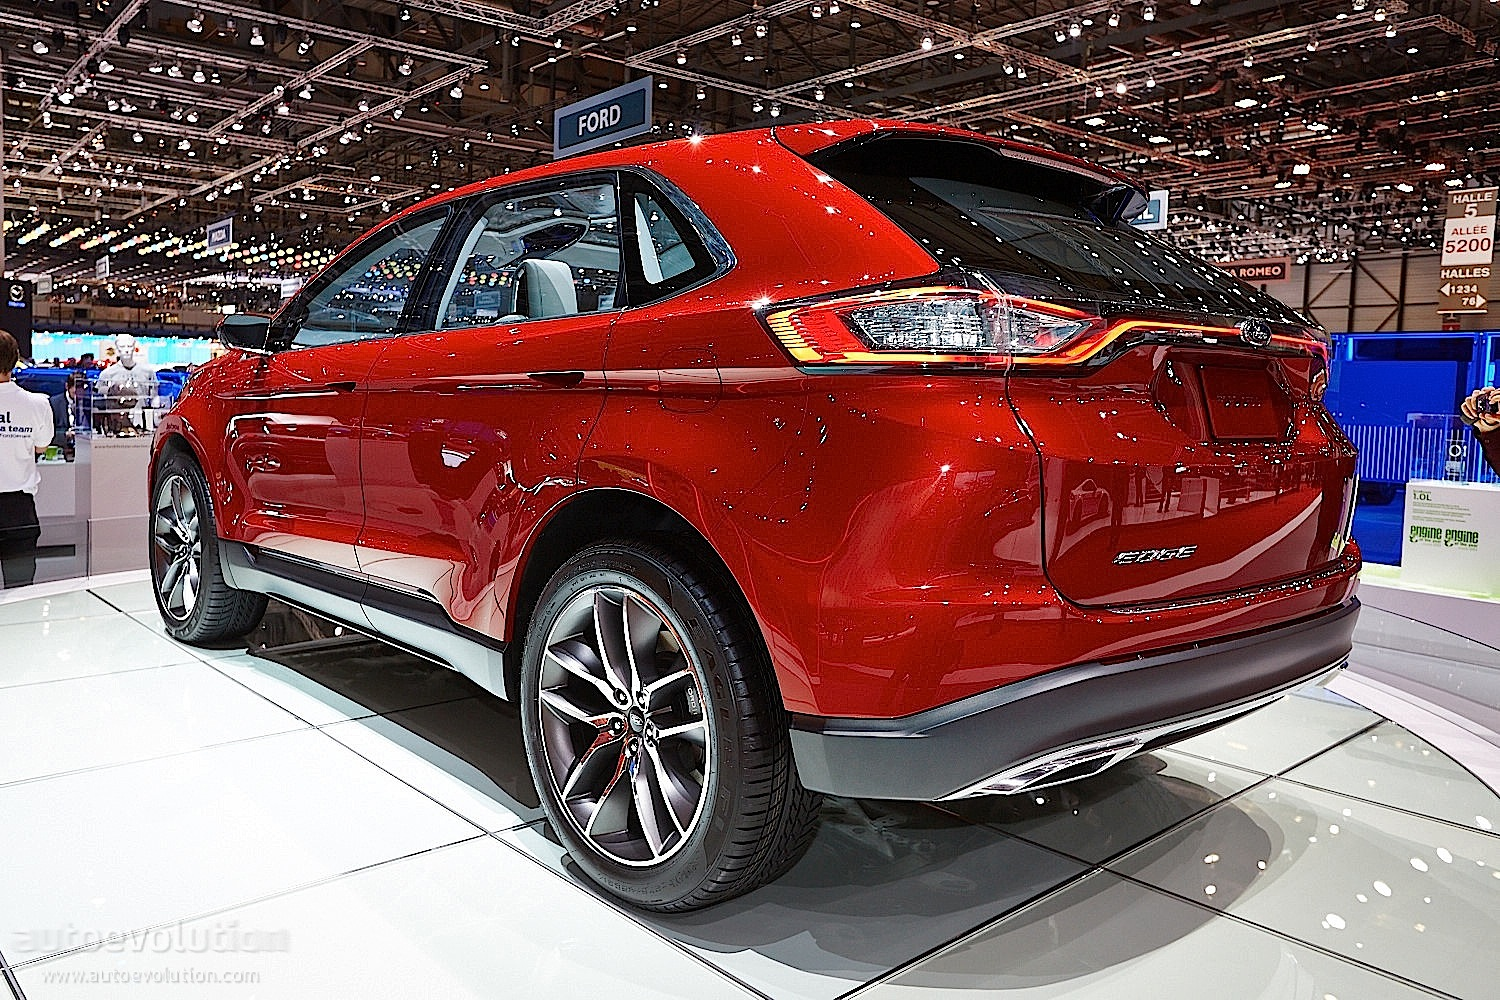 2015 Ford Edge concept @ Geneva Motor Show - photo gallery